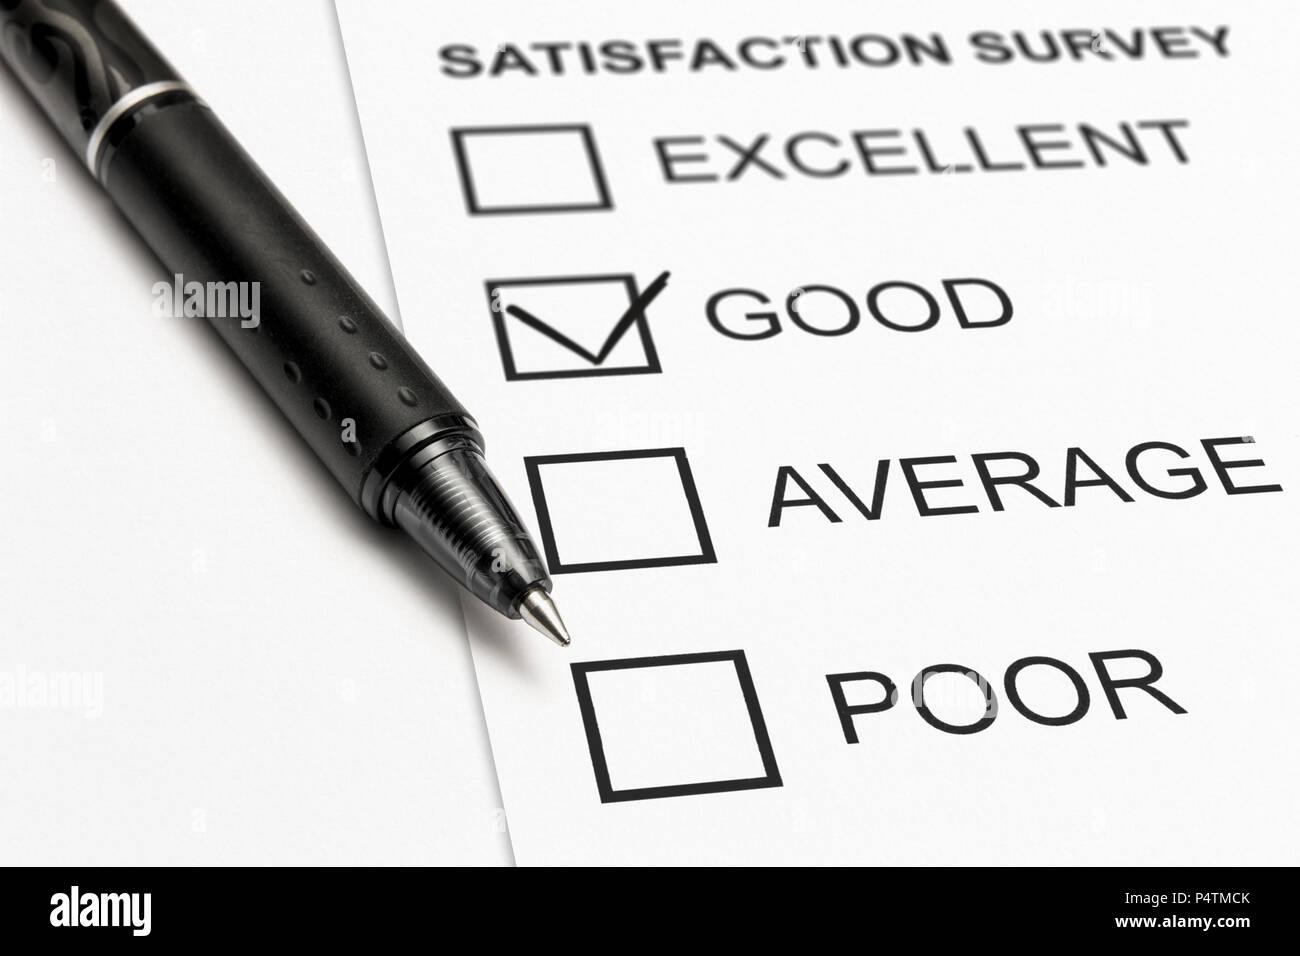 close up of a satisfaction survey with a check mark on good - Stock Image